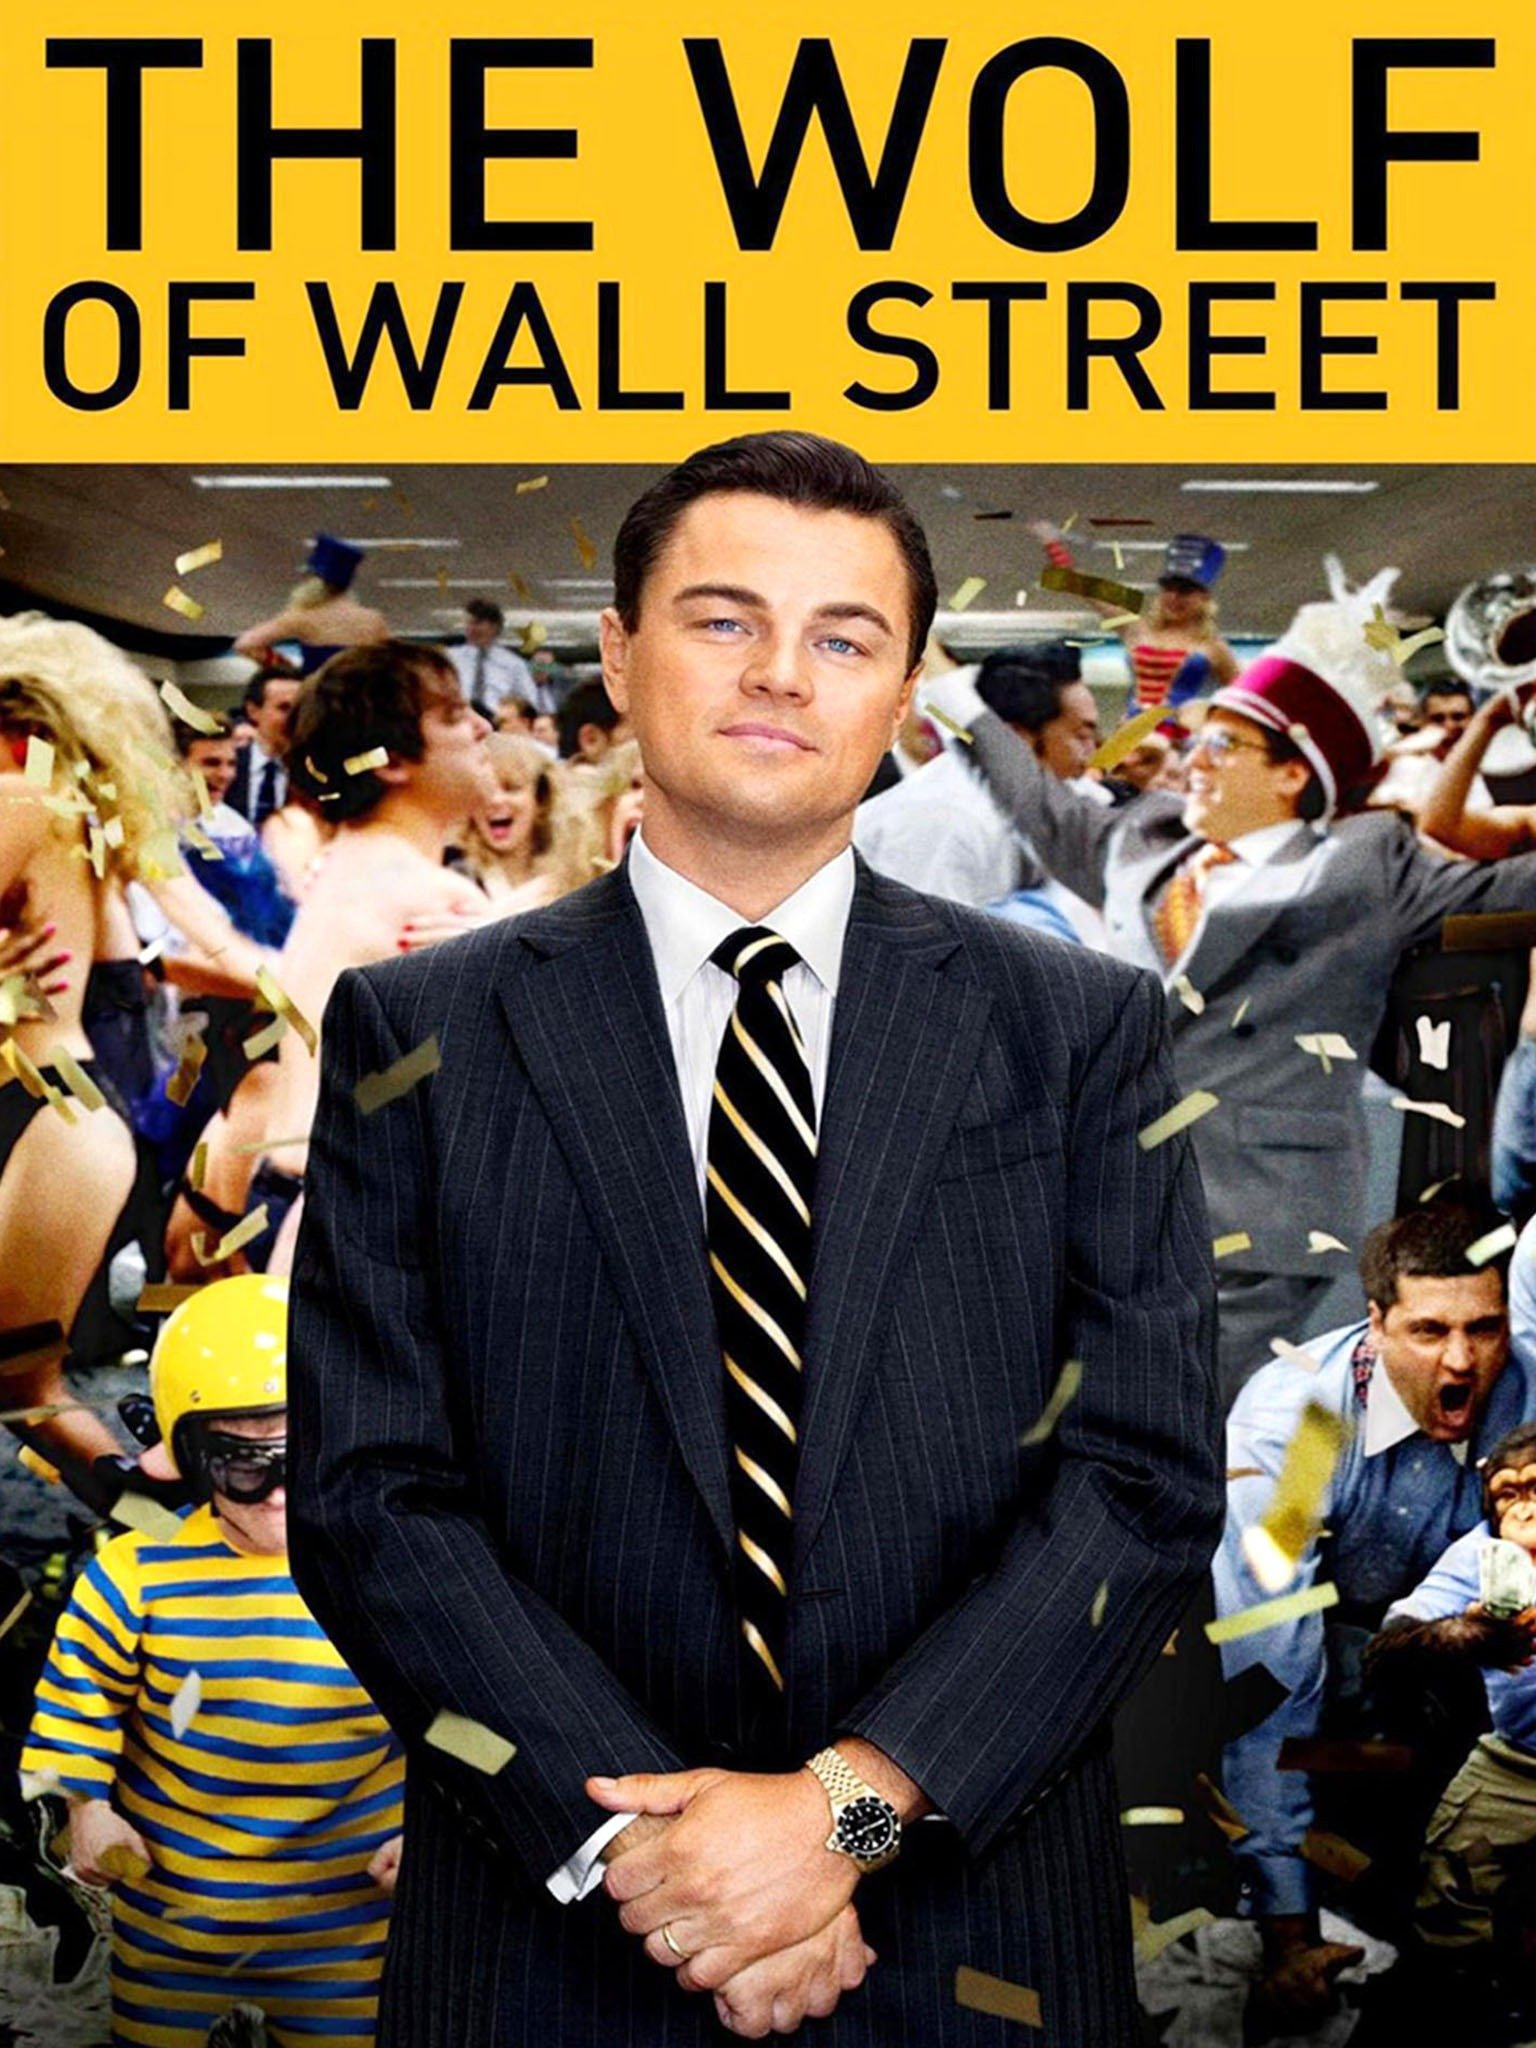 Watch The Wolf of Wall Street Online with NEON from $4.99